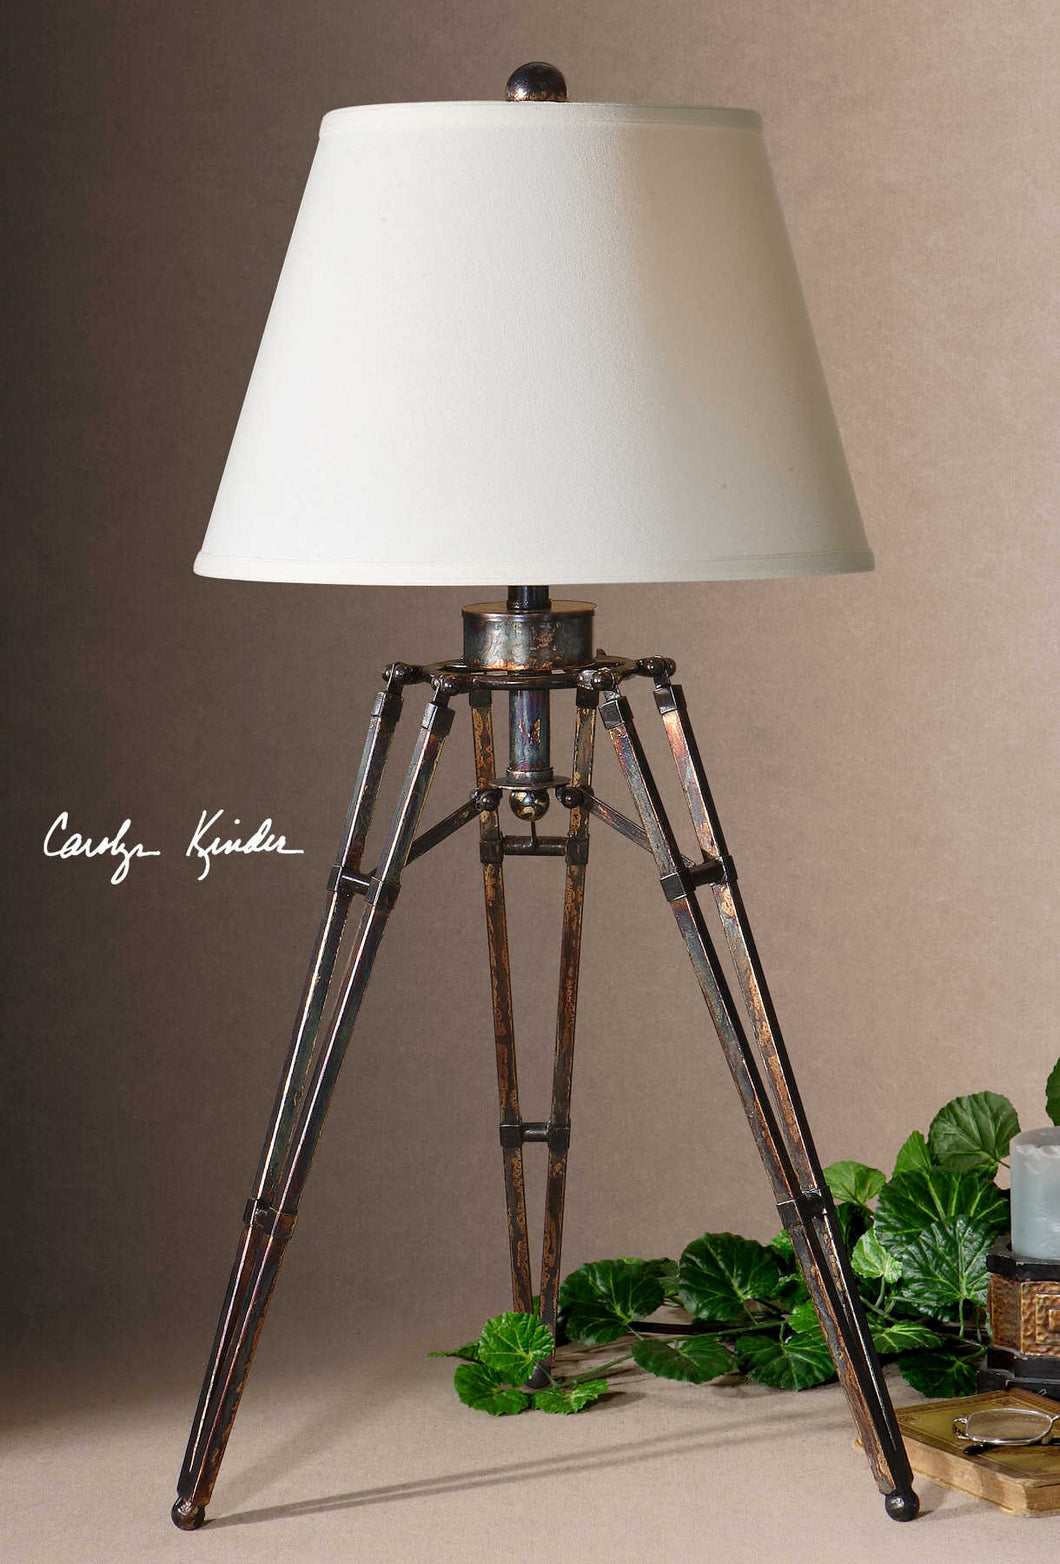 TUSTIN TABLE LAMP